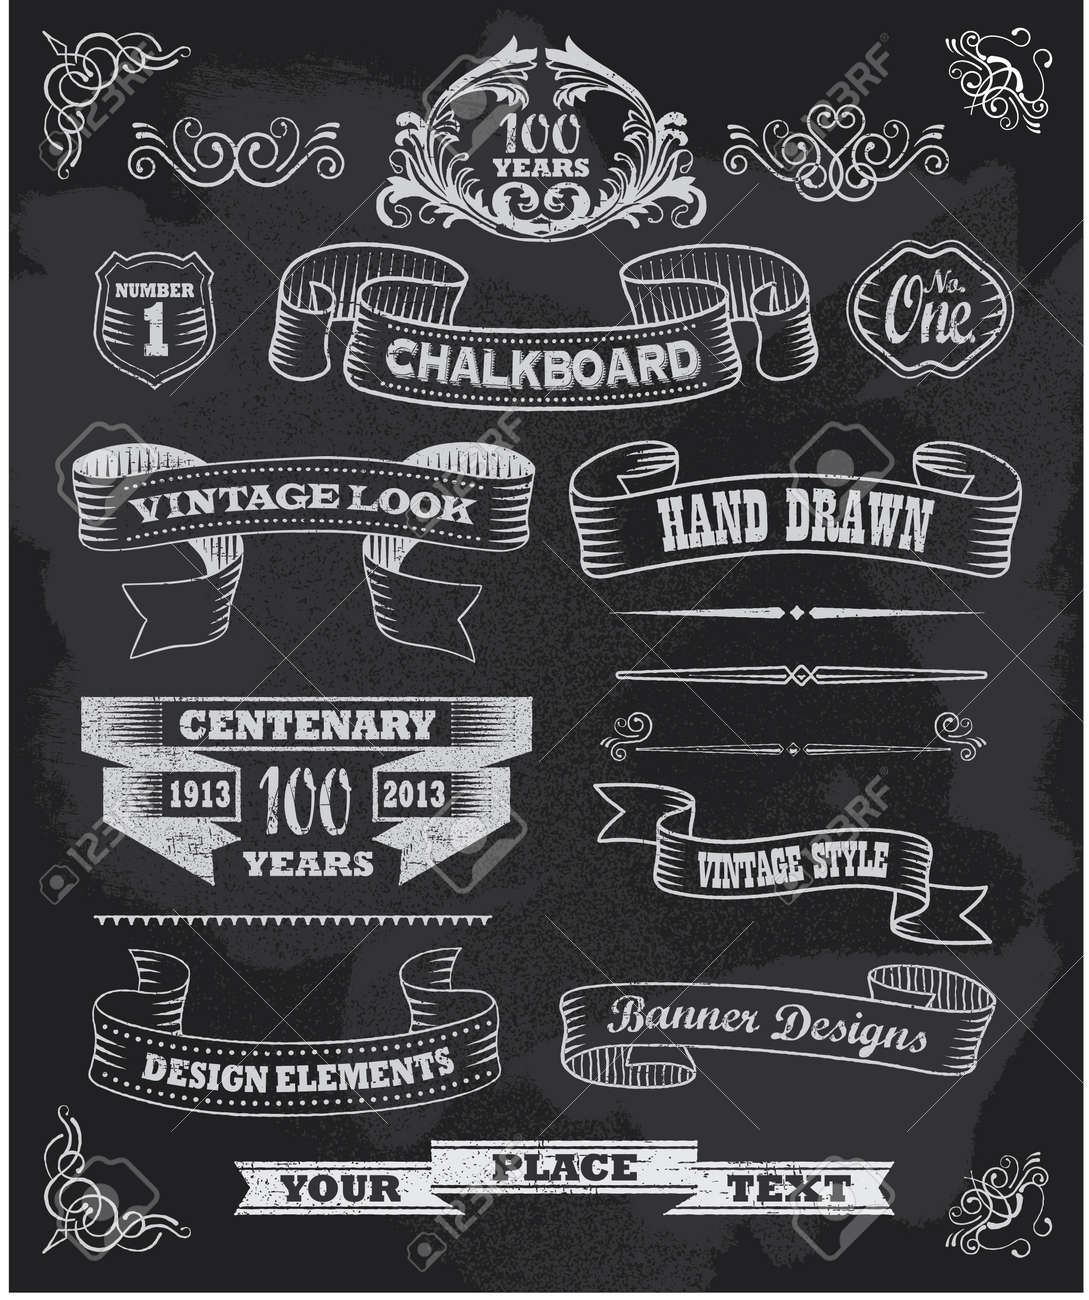 Chalkboard Designs 139746 Chalkboard Cliparts Stock Vector And Royalty Free